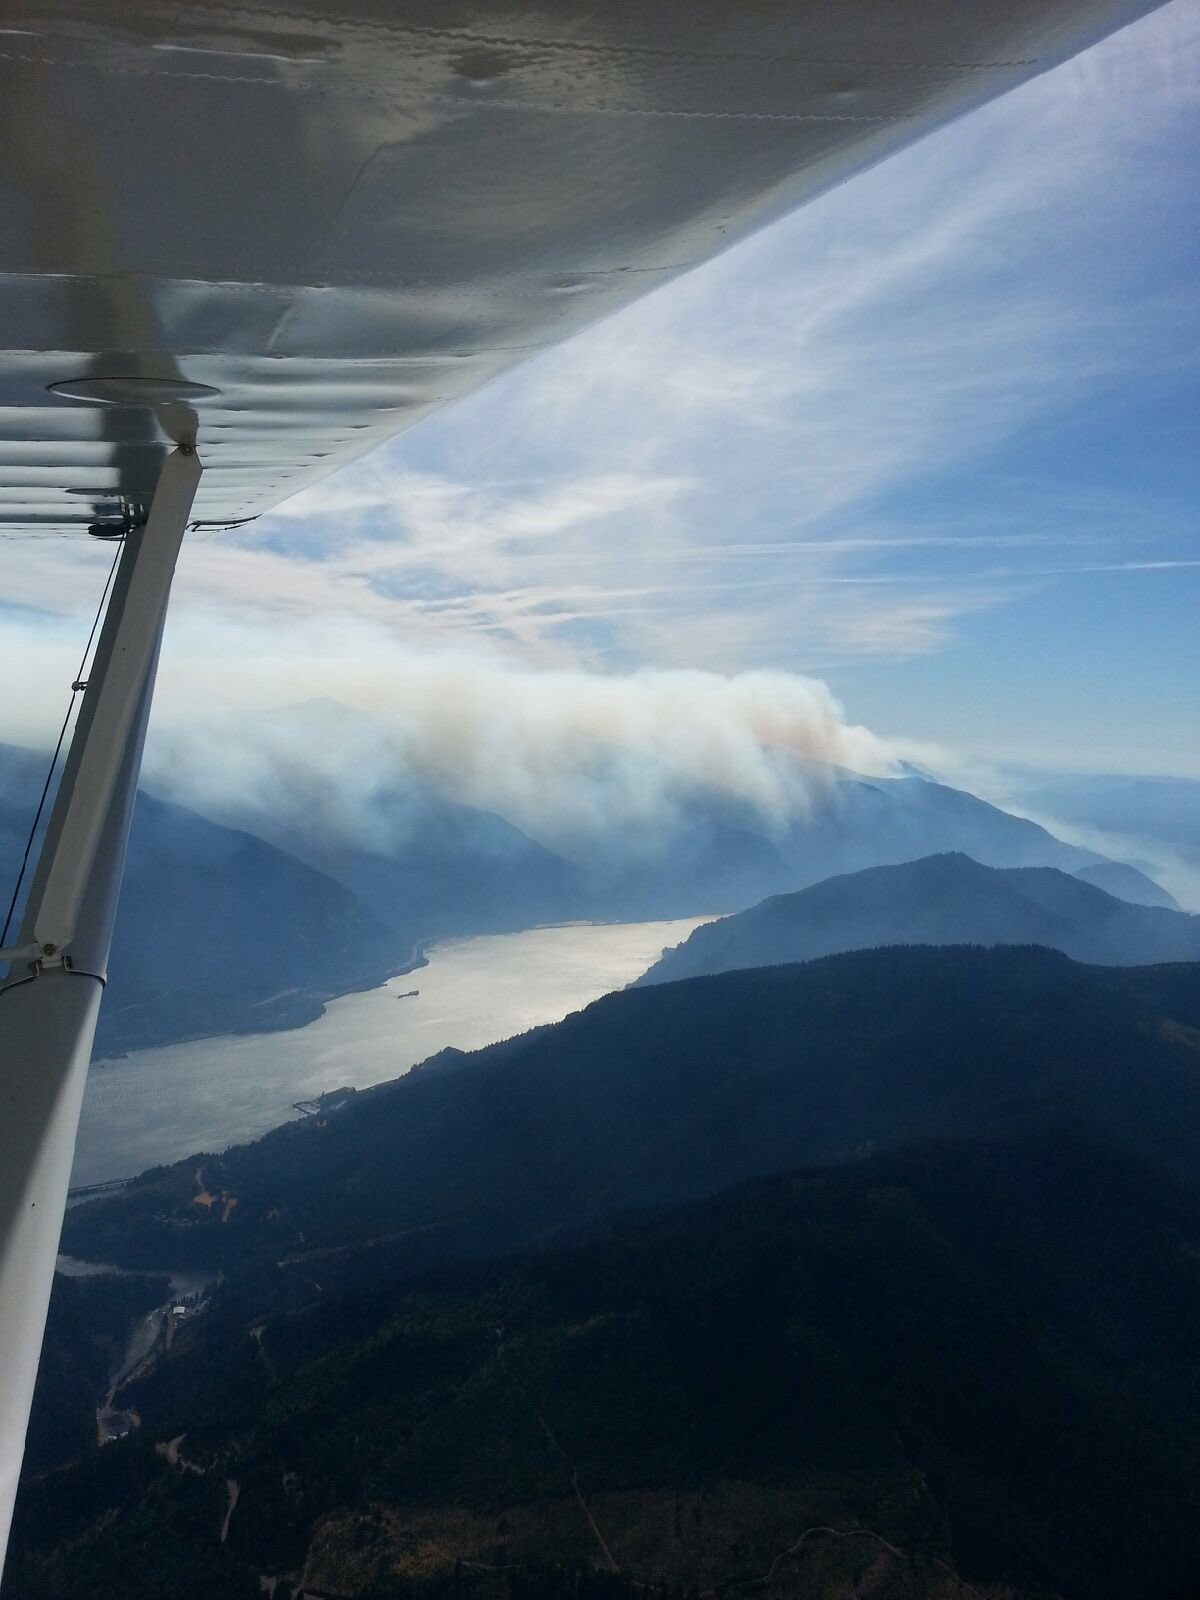 The Hood River County Sheriff's Office took these photos of the Eagle Creek Fire from an airplane on Sept. 12, 2017.